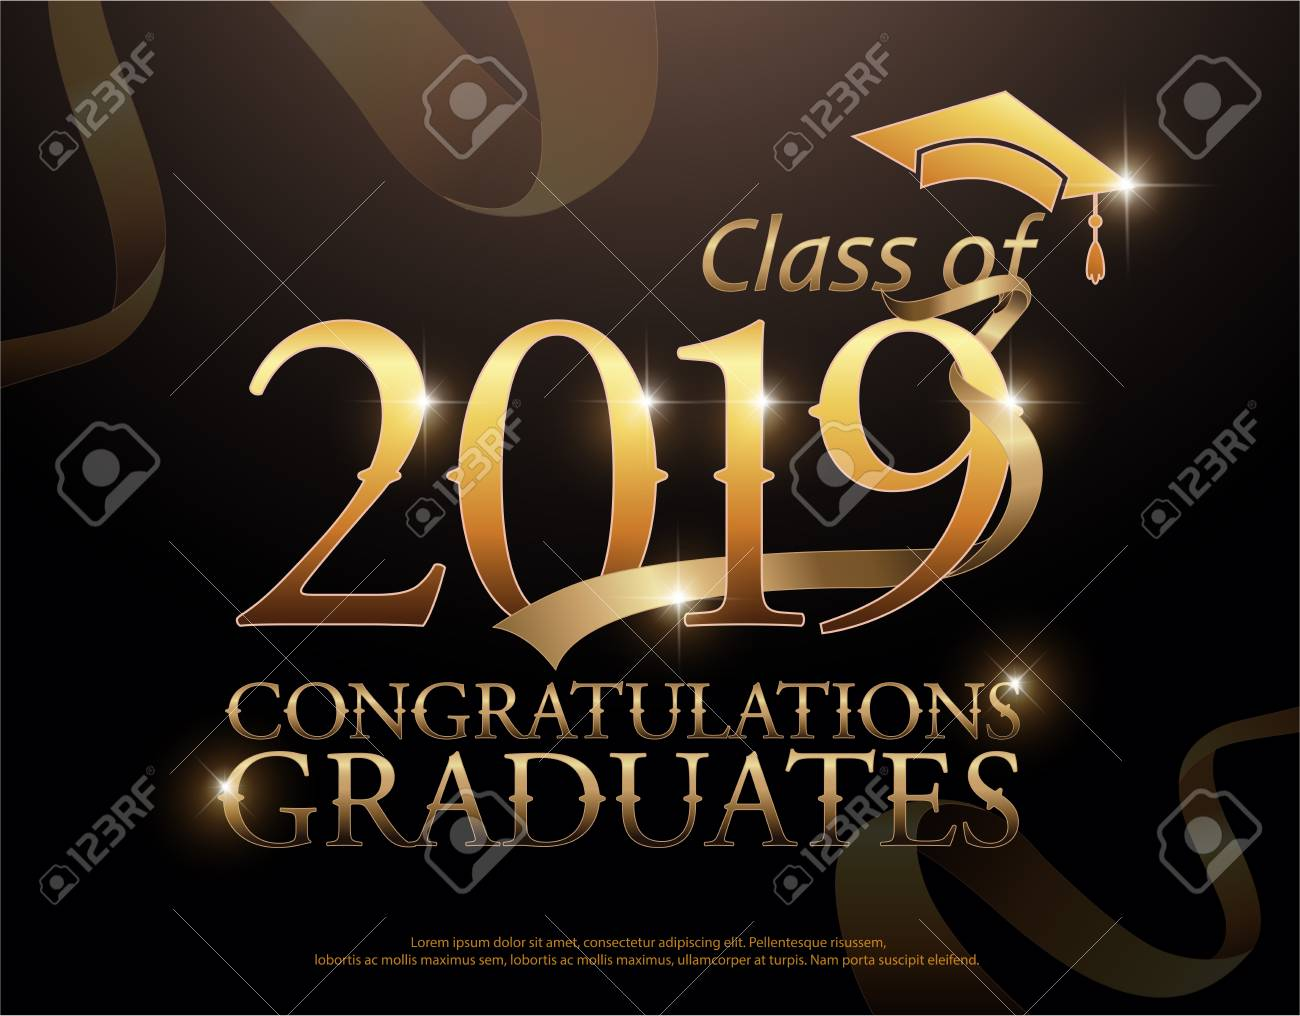 Class of 2019 Congratulations Graduates gold text with golden ribbons on dark background - 97912789